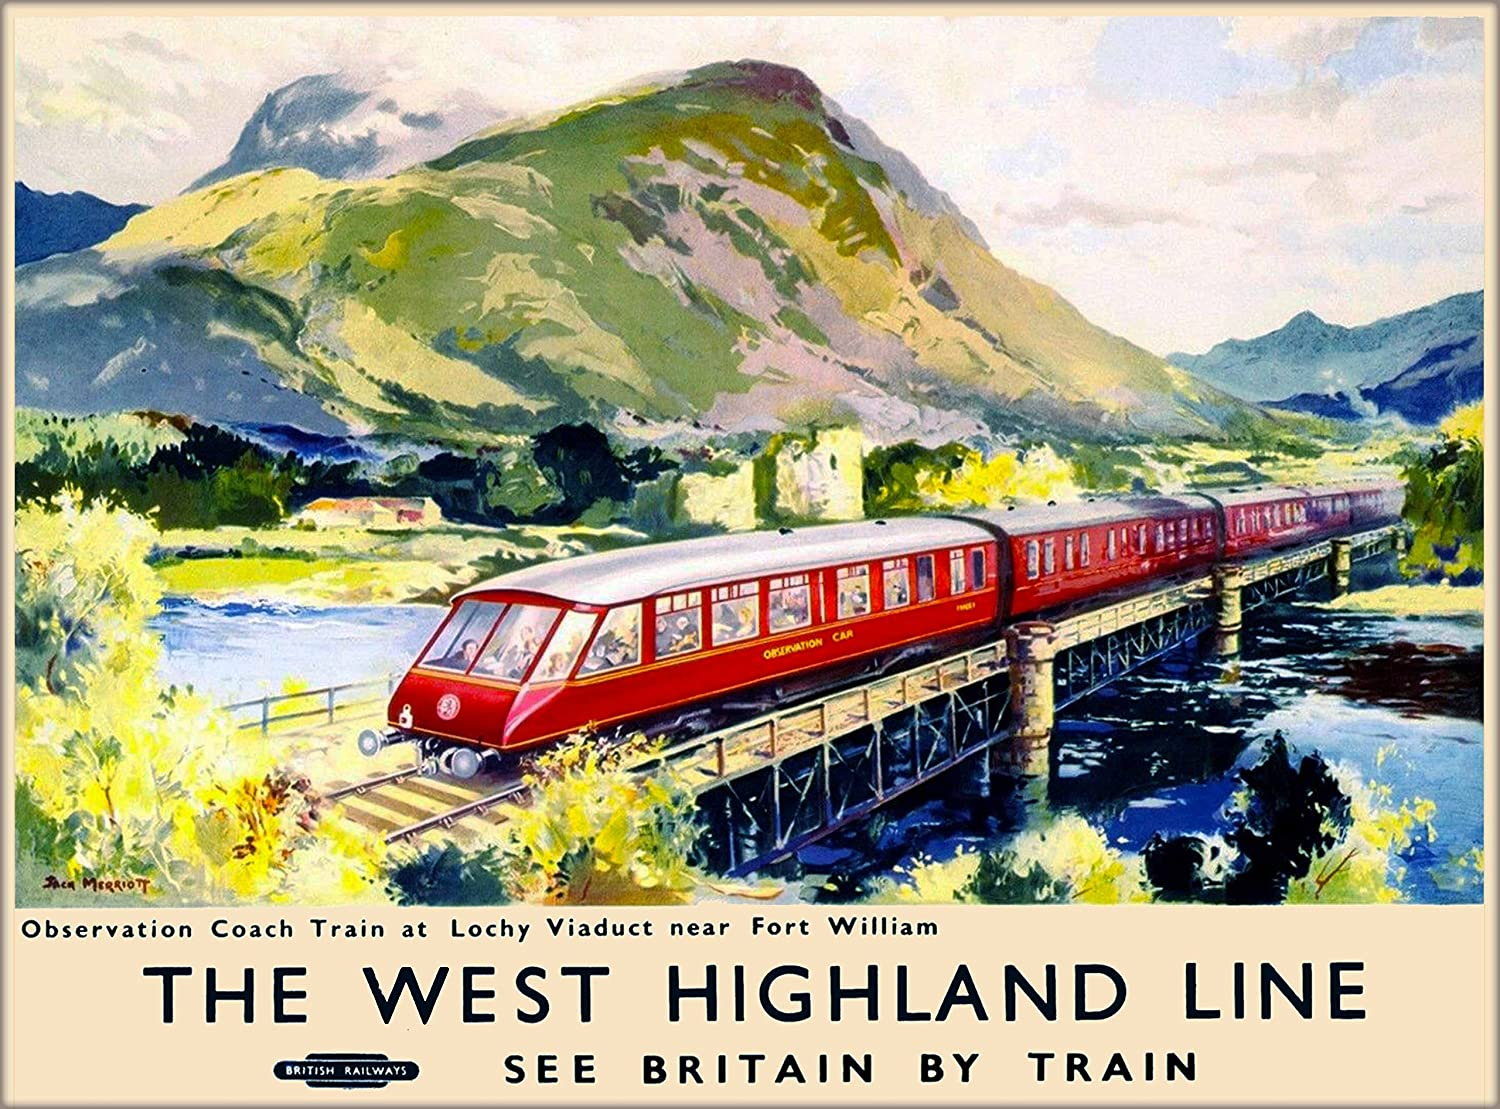 The West Highland Line See Britain by Train Scotland British Railways United Kingdom Vintage Railroad Travel Home Collectible Wall Decor Advertisement Art Poster Print. Measures 10 x 13.5 inches